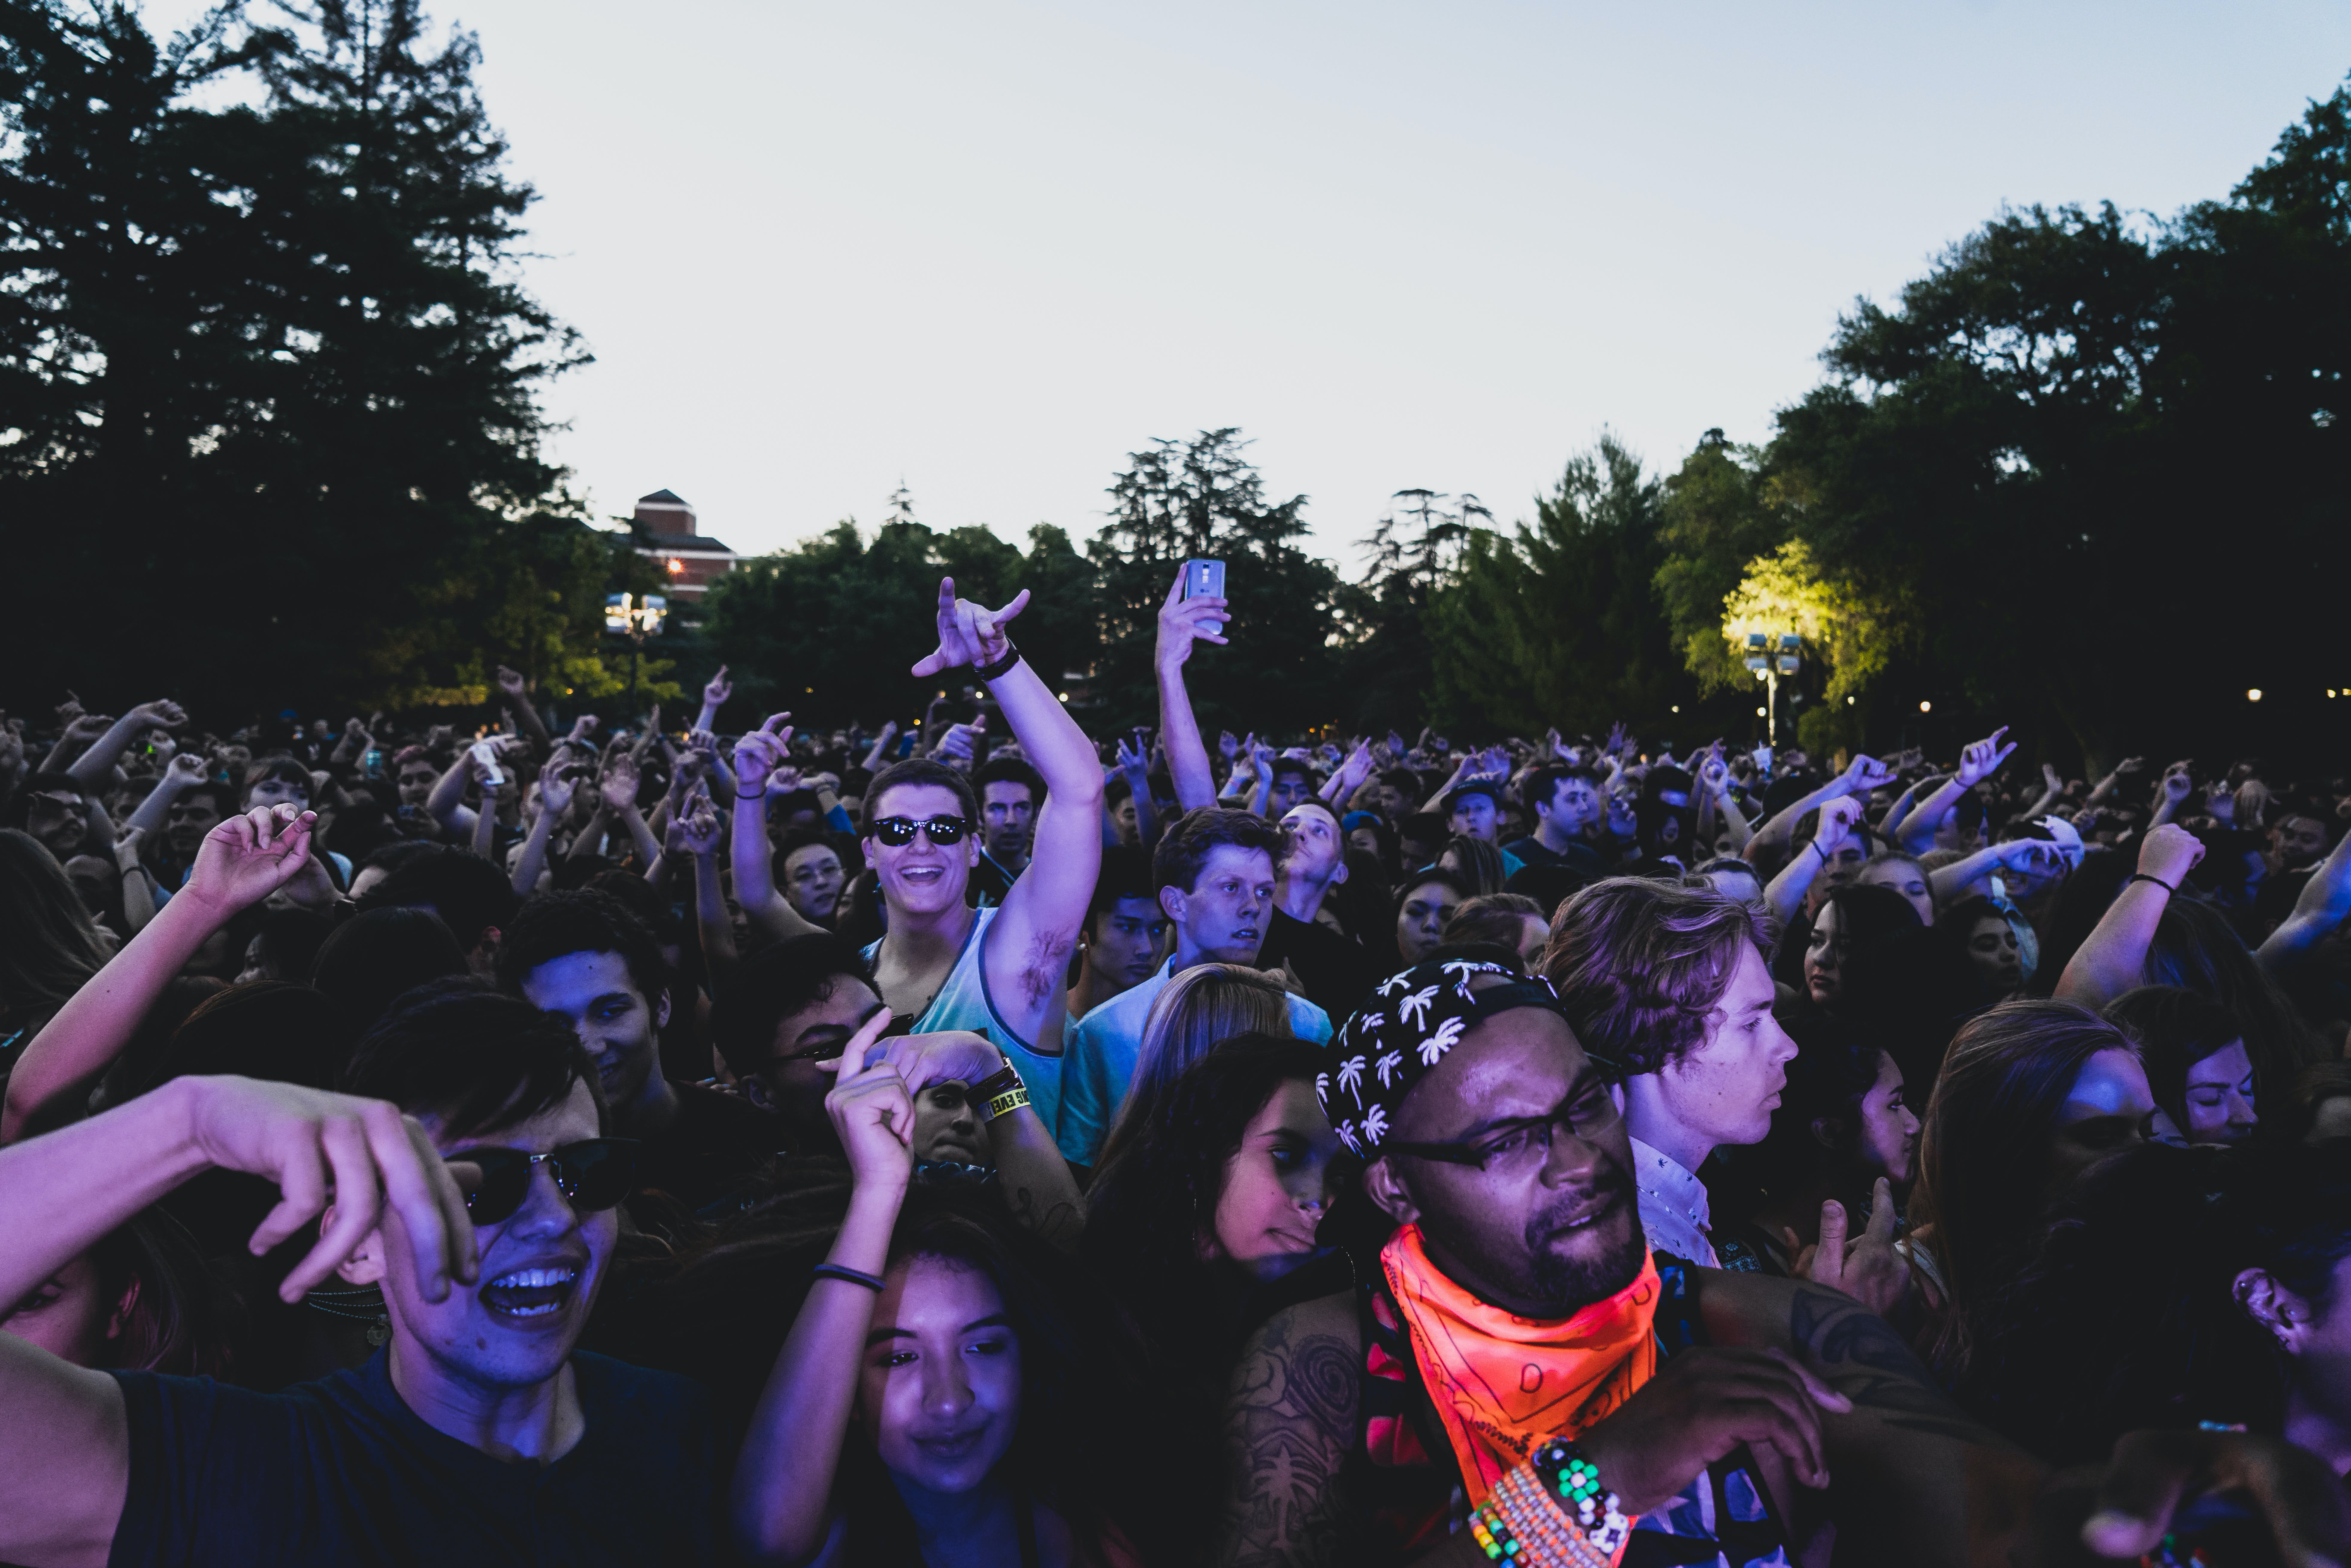 Free stock photo of festival, crowd, fans, show